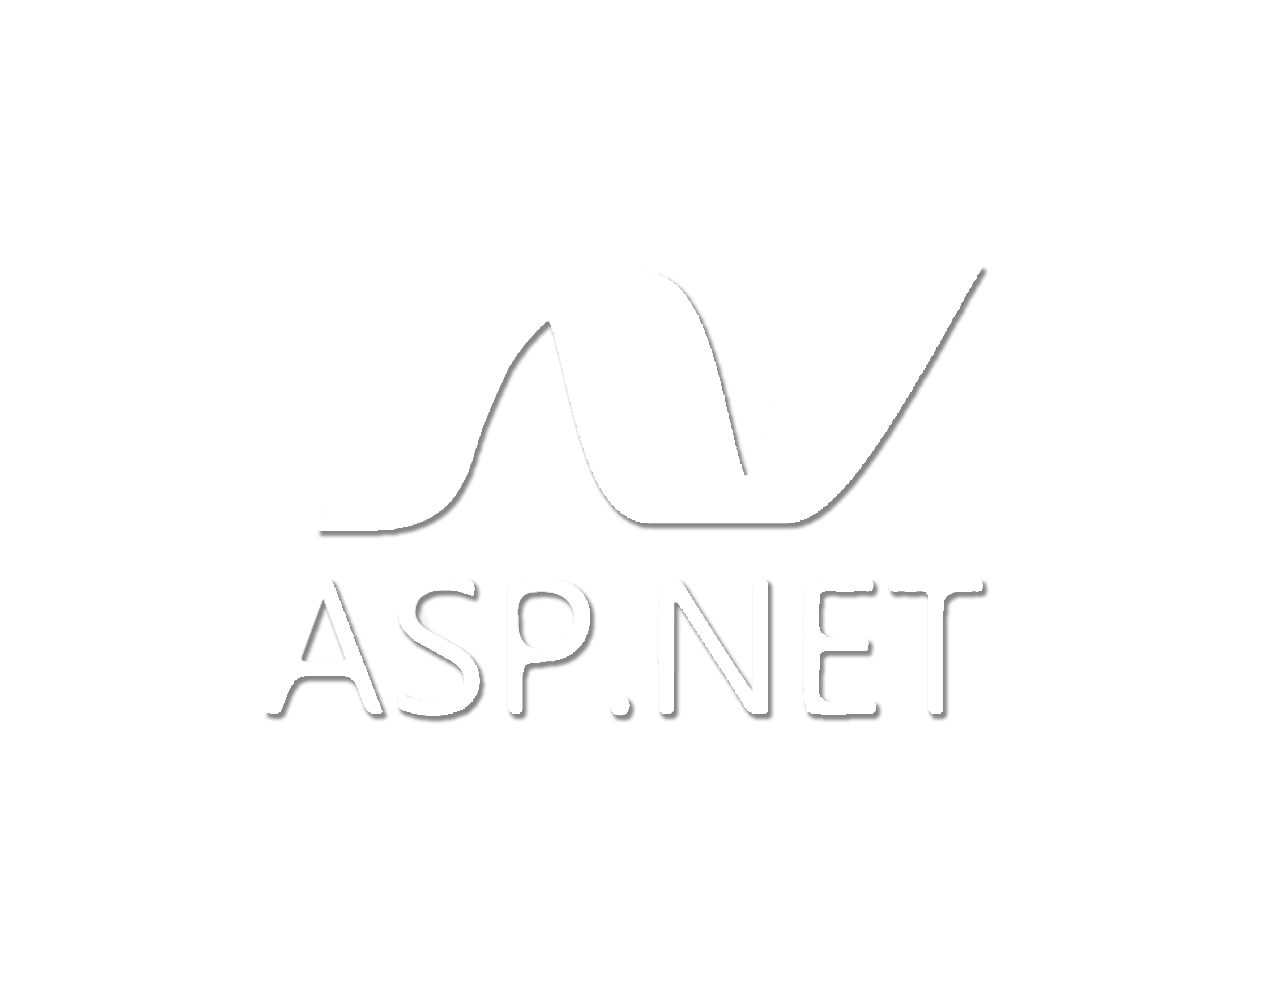 Logo ASP.NET Transparent Full Stack Page Metas